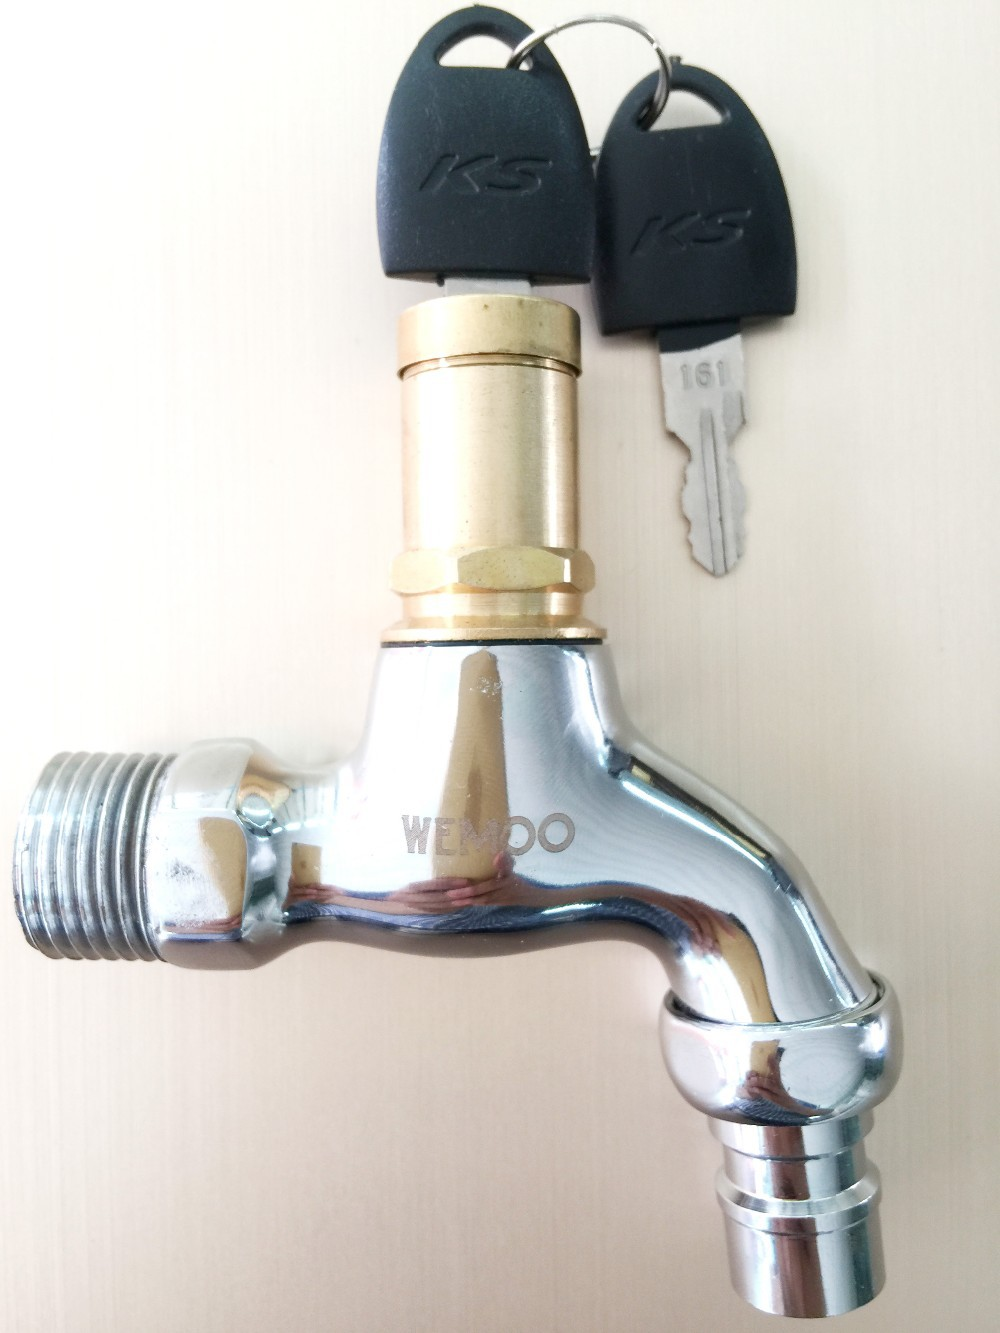 2015 HIgh Quality 1/2 inch Brass Bibcocks With Lock Faucet Basin ...